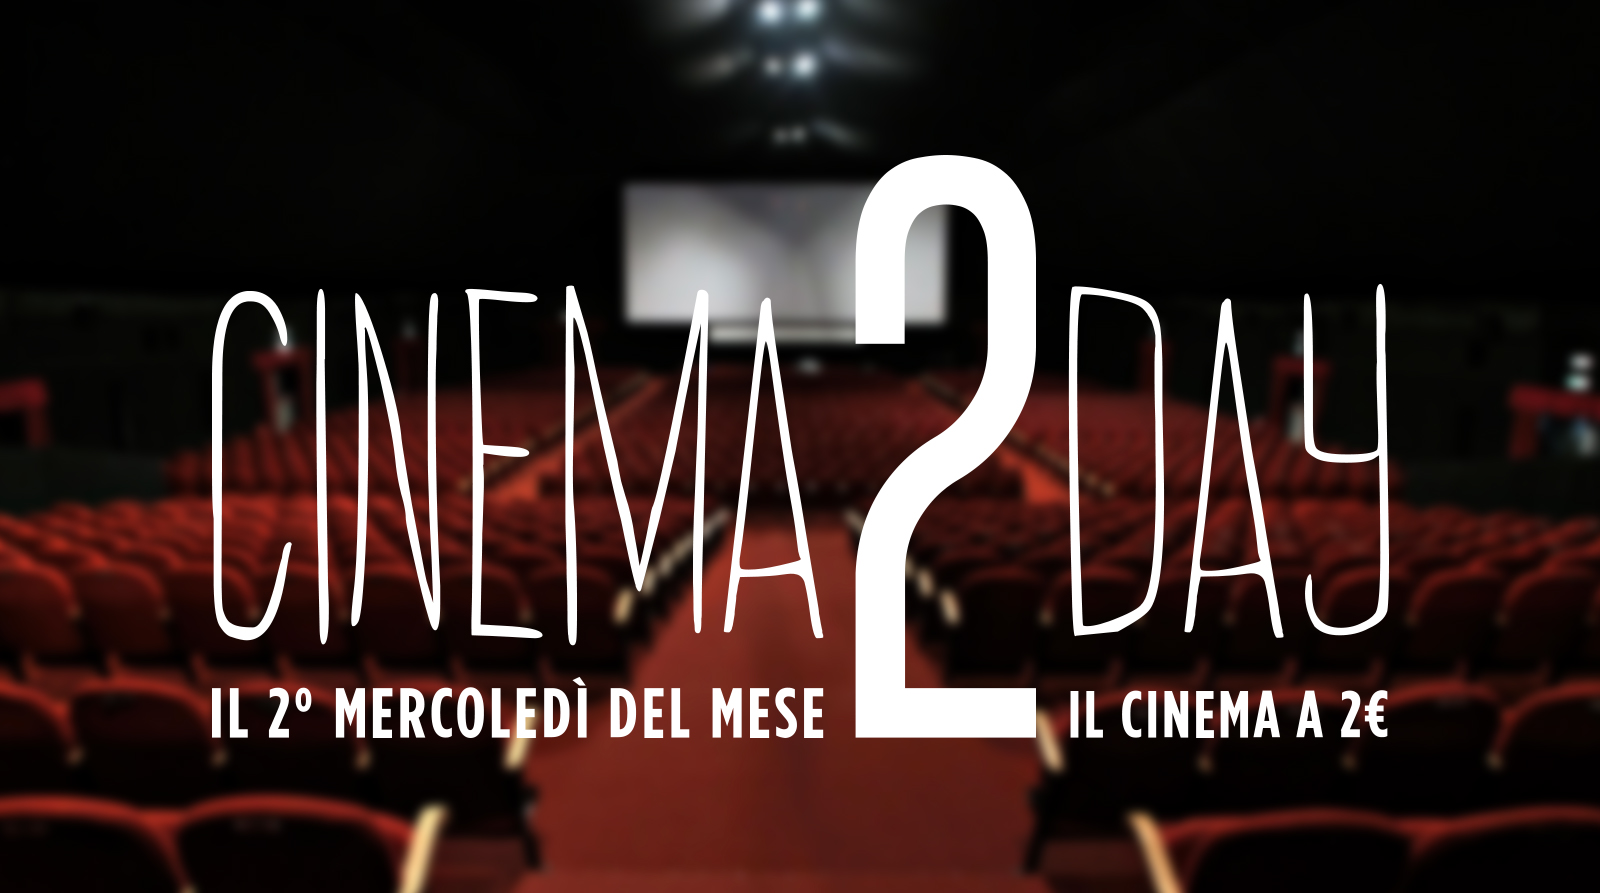 cinema2day_cinema_2016_2